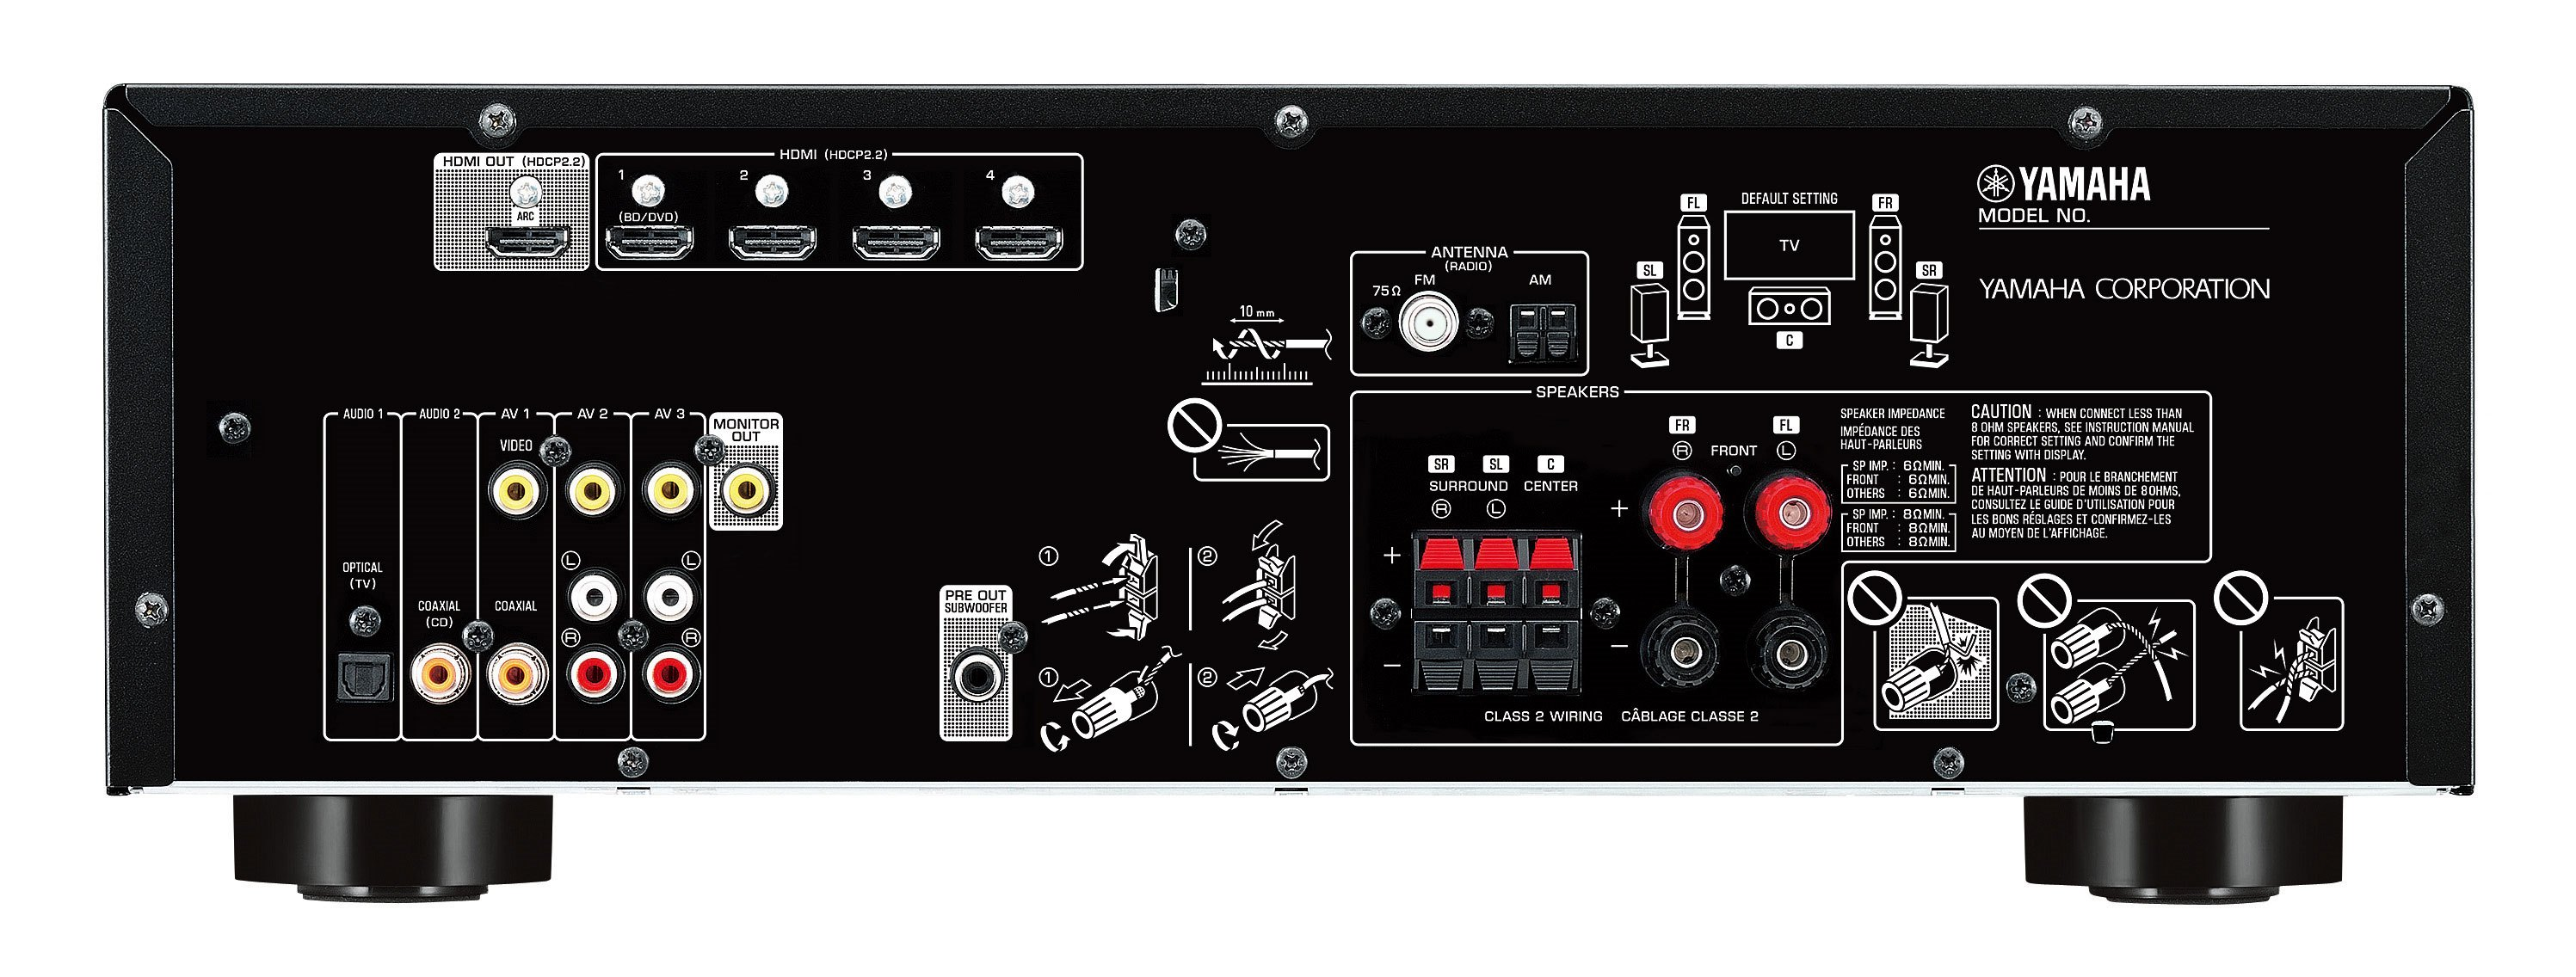 RX-V383 - Overview - AV Receivers - Audio & Visual - Products